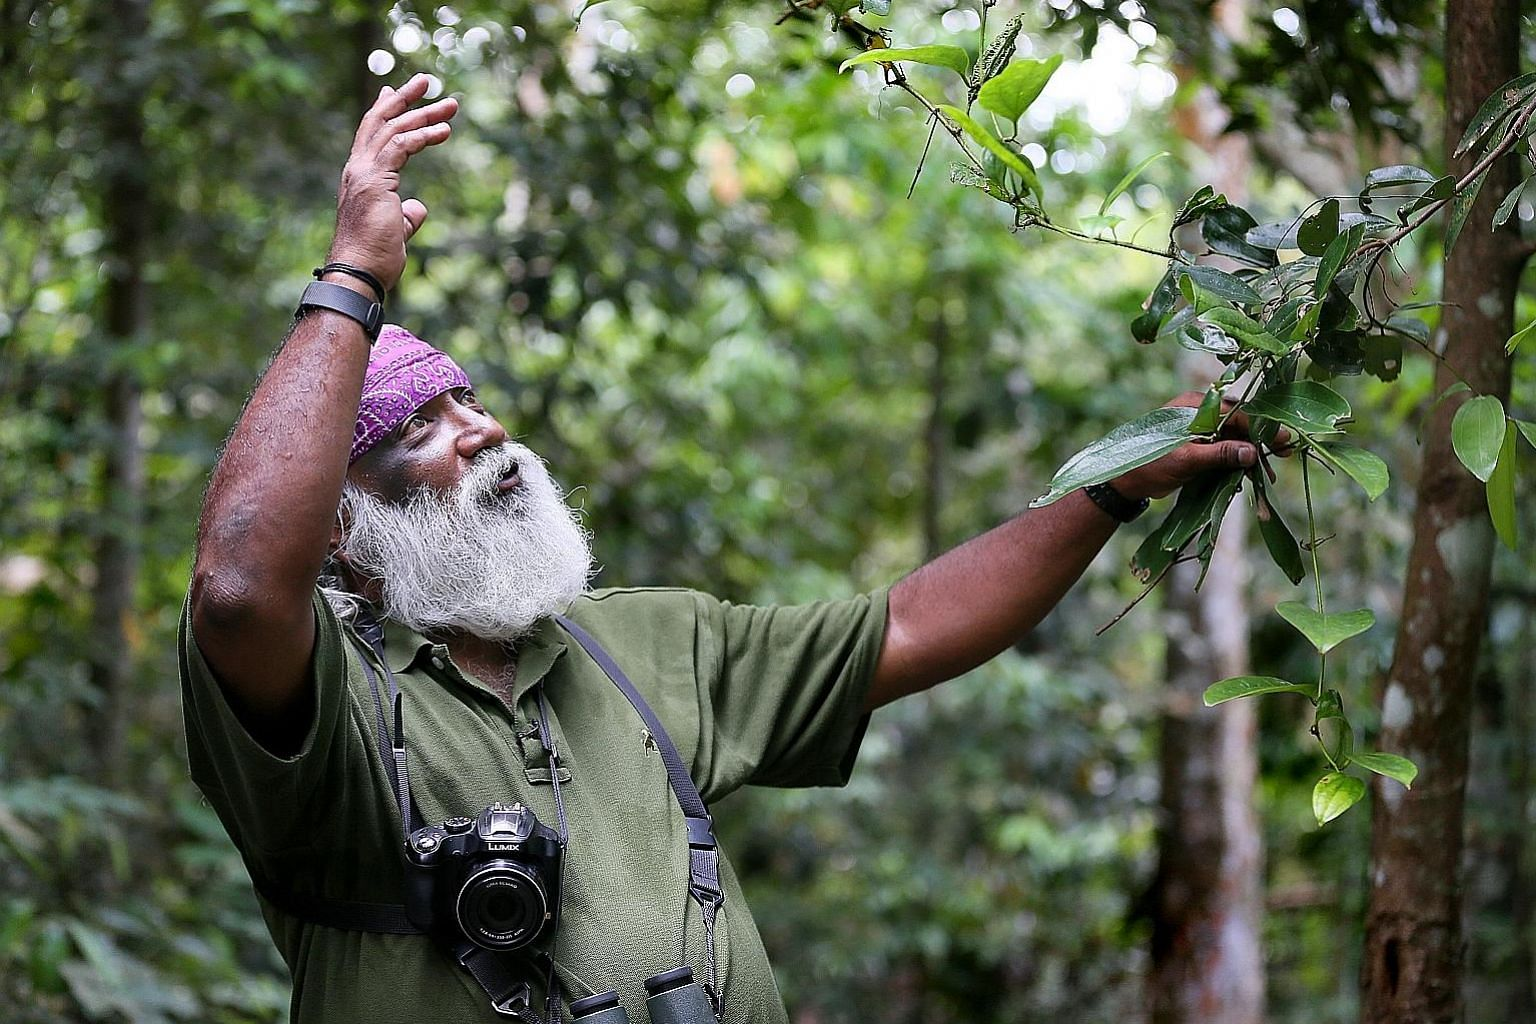 The nature community, including veteran wildlife expert Subaraj Rajathurai, believes the roadkills happened because Mandai Park Development did not take enough care to reduce environmental impact.